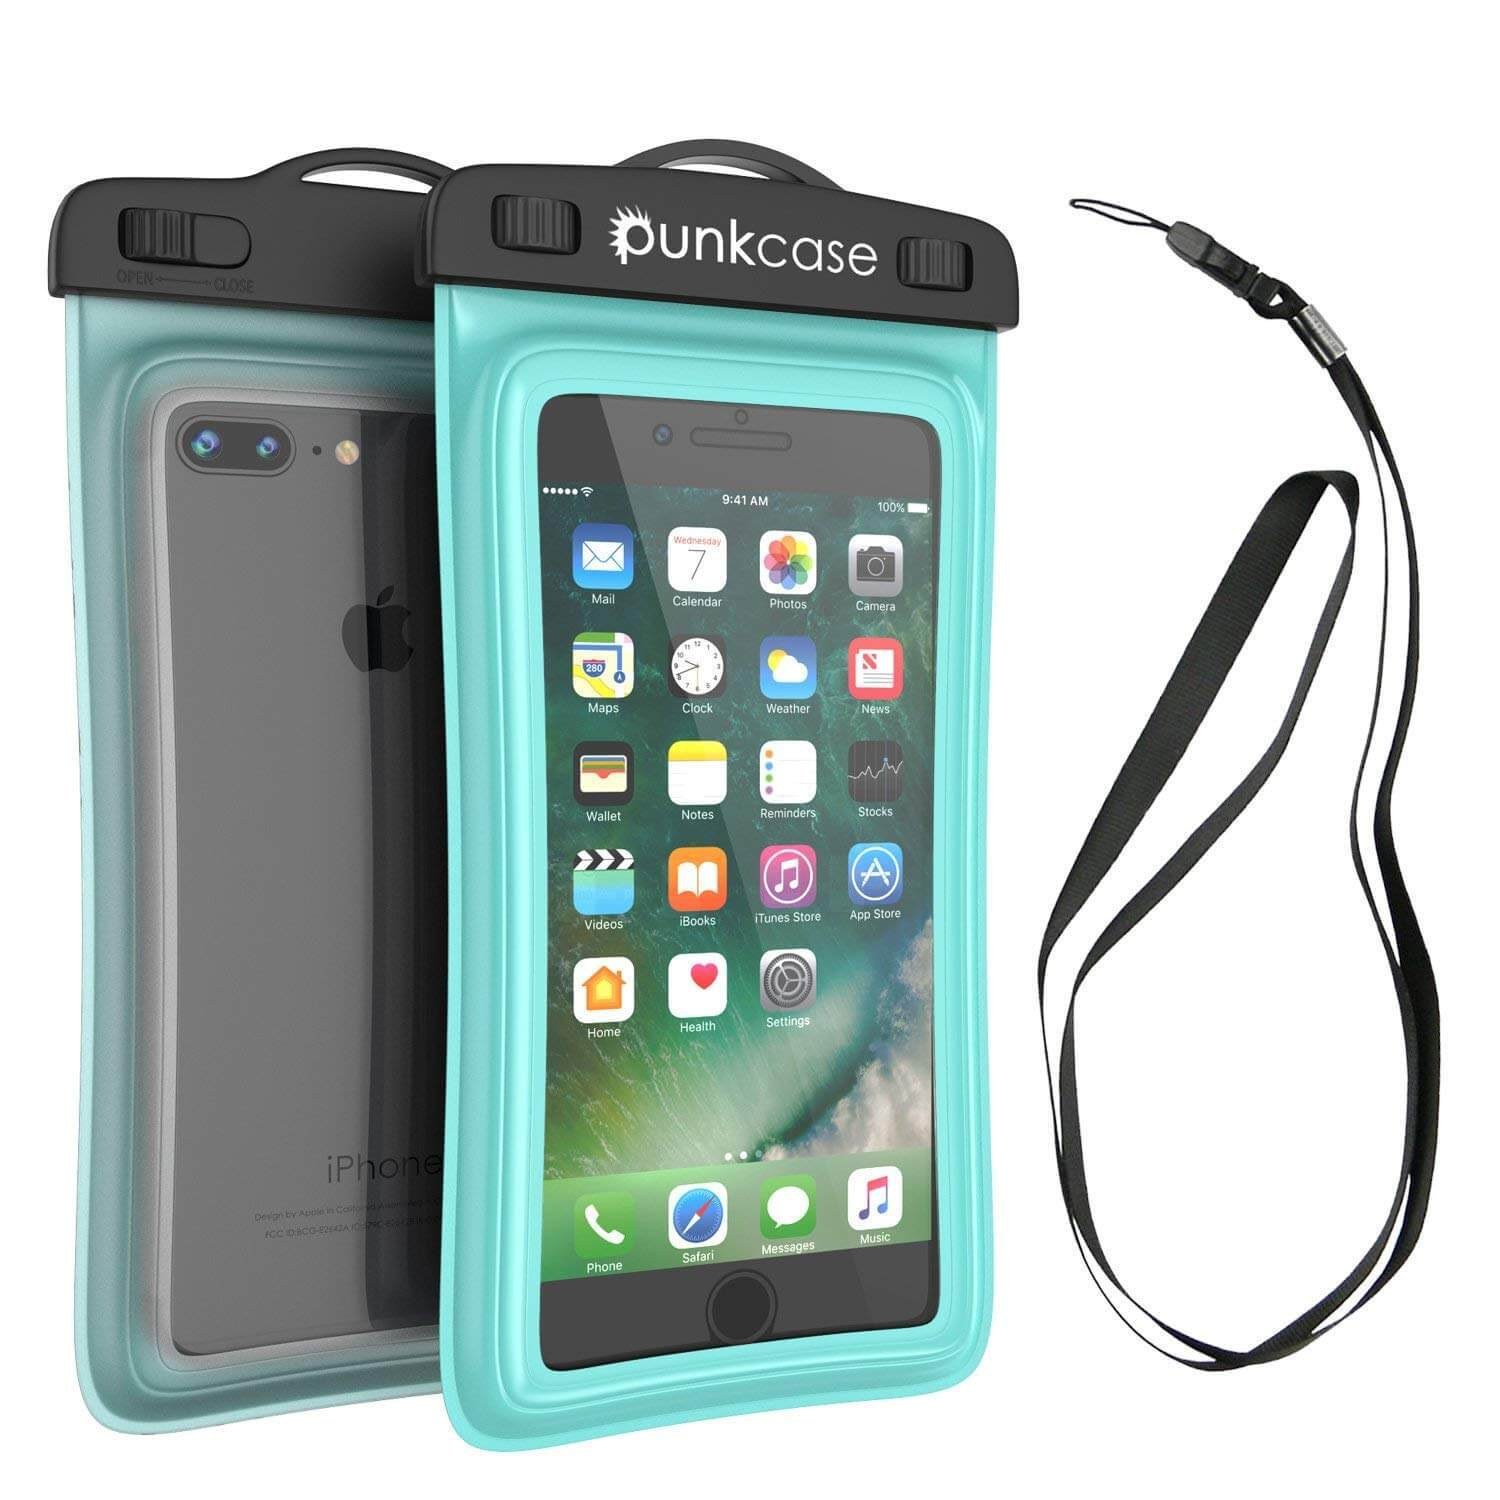 Waterproof Phone Pouch, PunkBag Universal Floating Dry Case Bag for most Cell Phones [Teal]